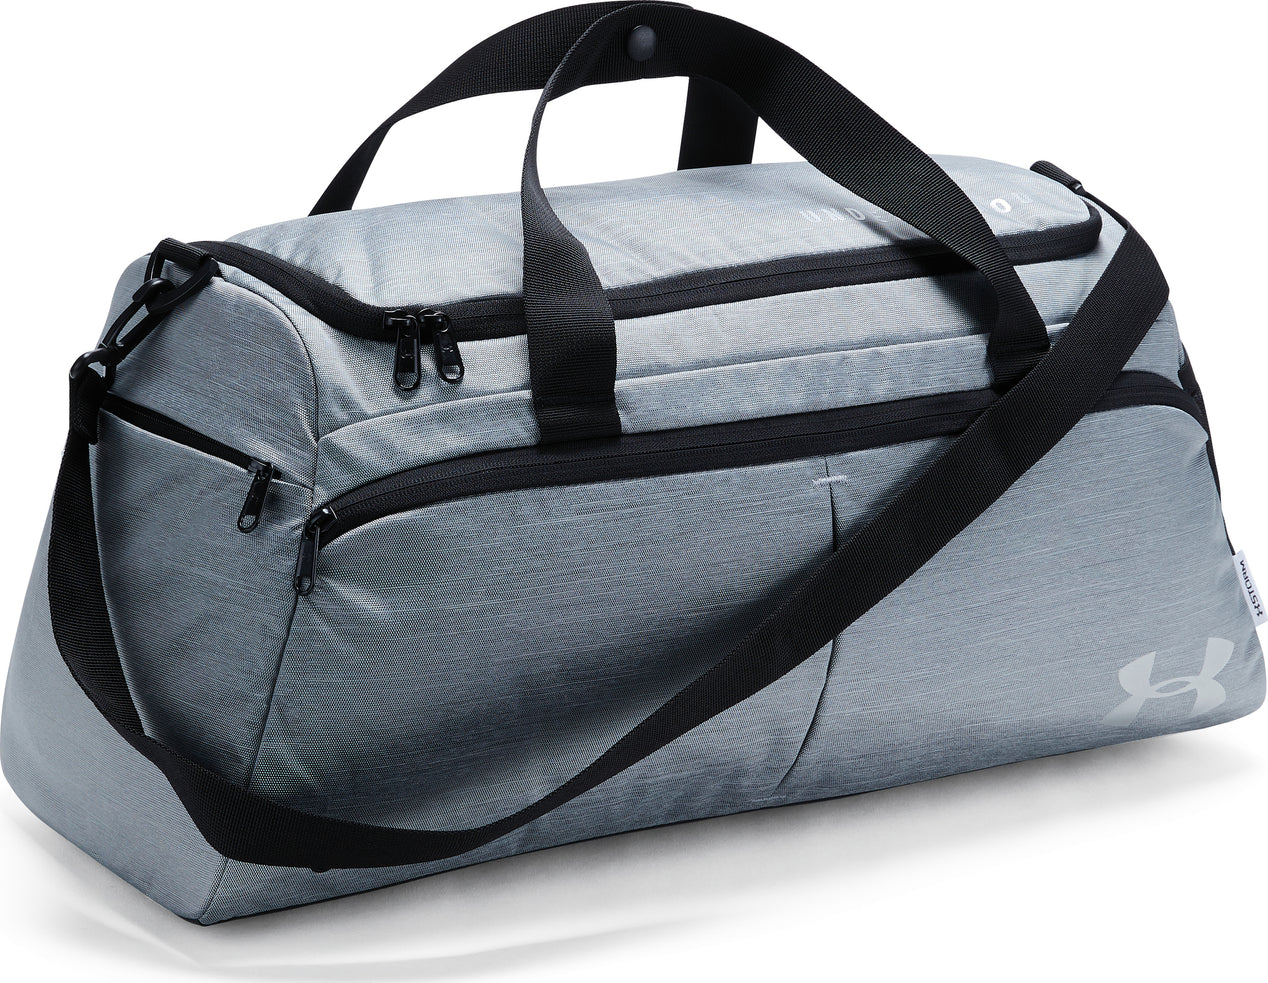 UA Undeniable Duffle Bag - Women s Black Full Heather - Black - Metallic  Cristal Gold Afs ... 2bce0a5573934